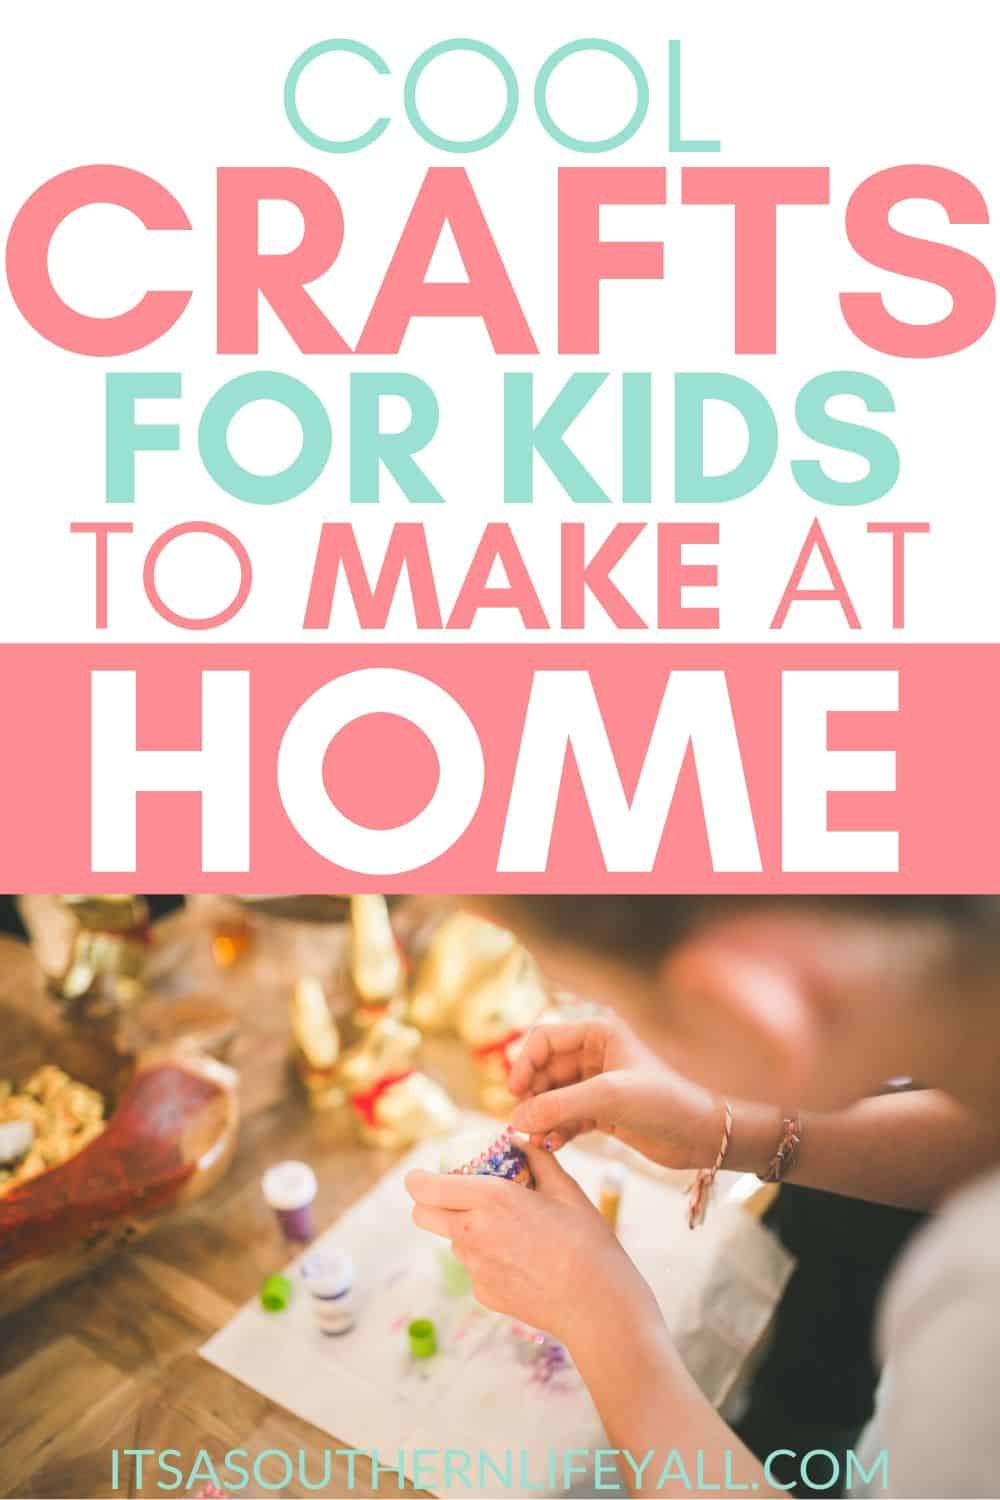 Image of kid working on a craft with text overlay Cool crafts for kids to make at home